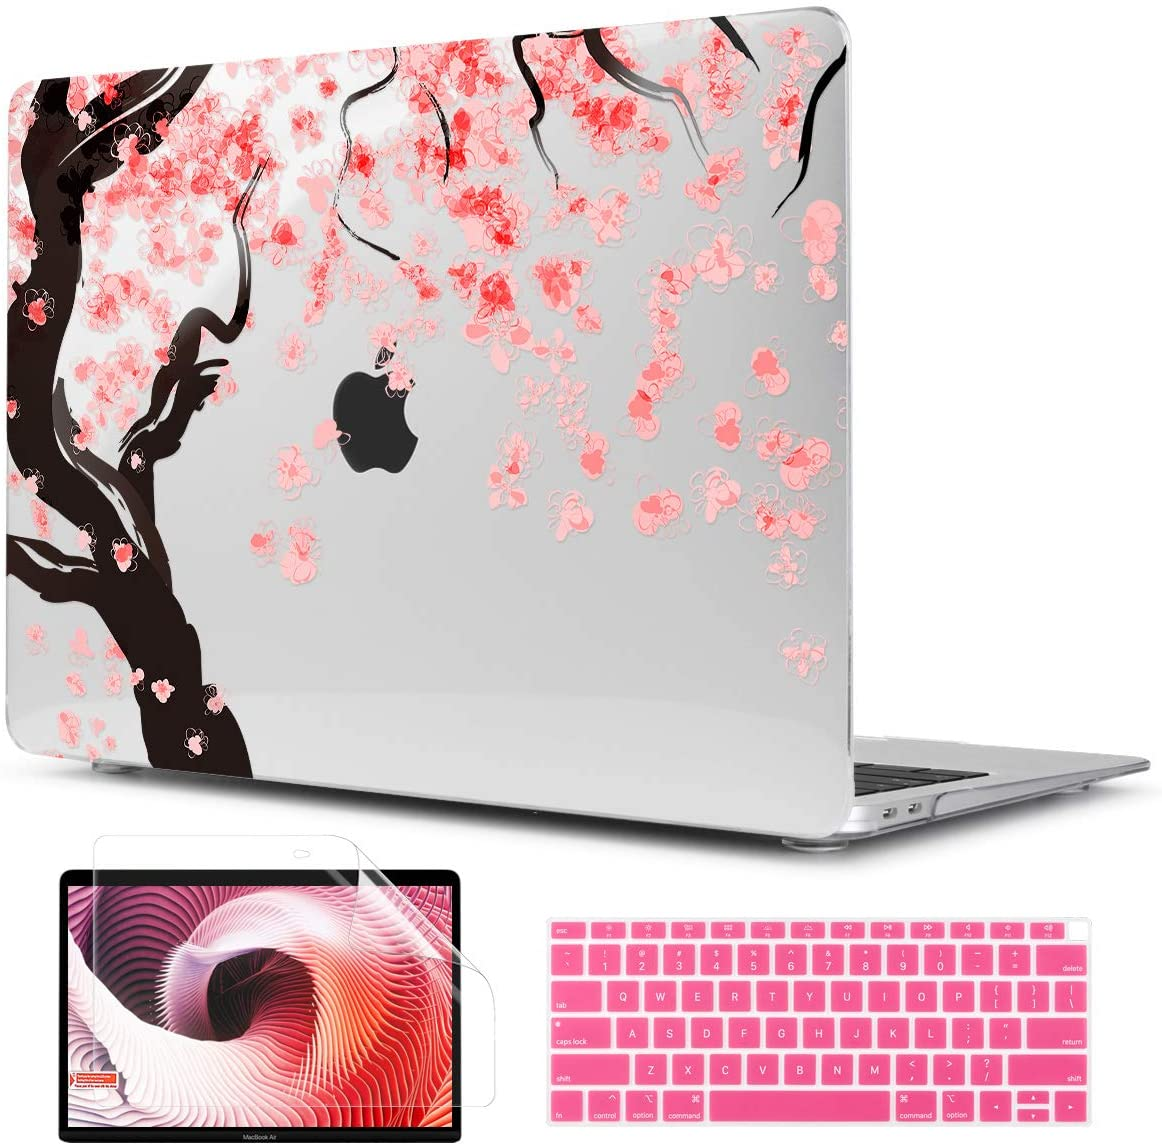 TwoL Cover for MacBook Air 13 inch 2019 2018, Cherry Blossoms Printed Hard Shell Case and Keyboard Skin Screen Protector for New MacBook Air 13 A1932 Release 2019 2018 with Touch ID